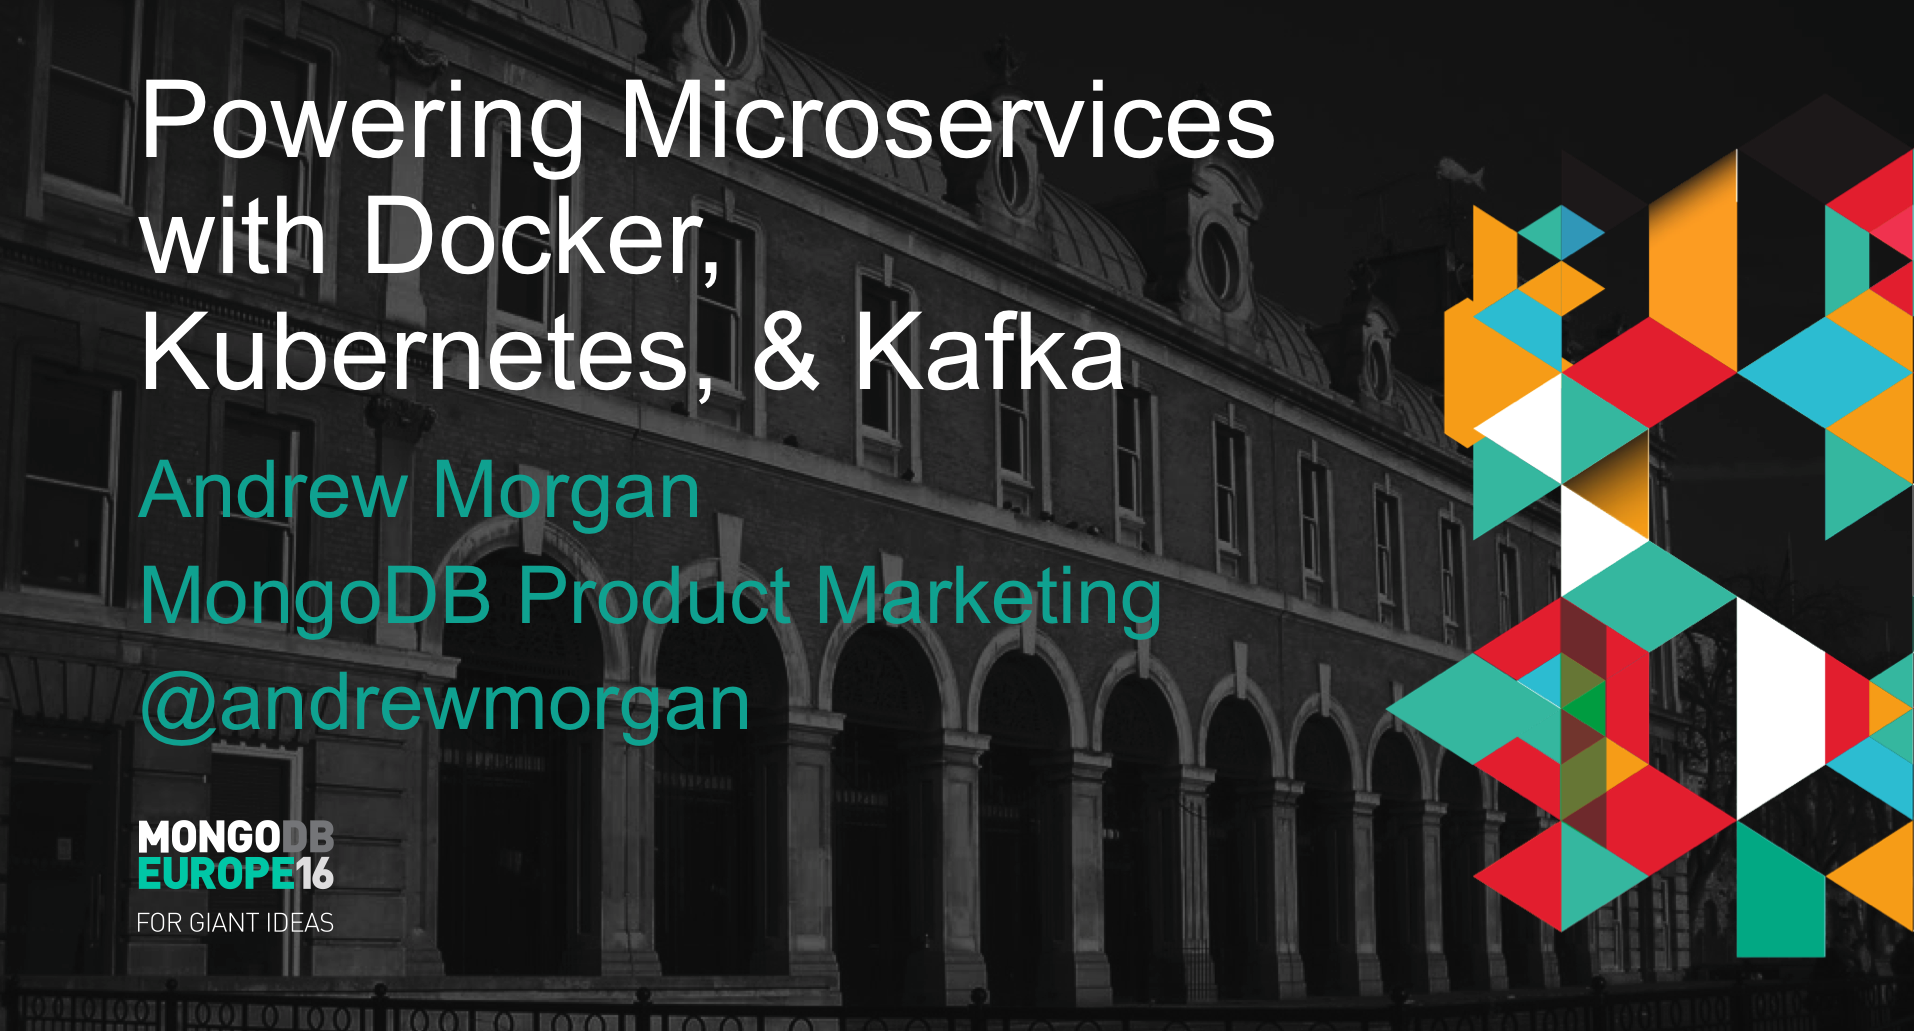 Building Microservices with MongoDB, Docker, Kubernetes